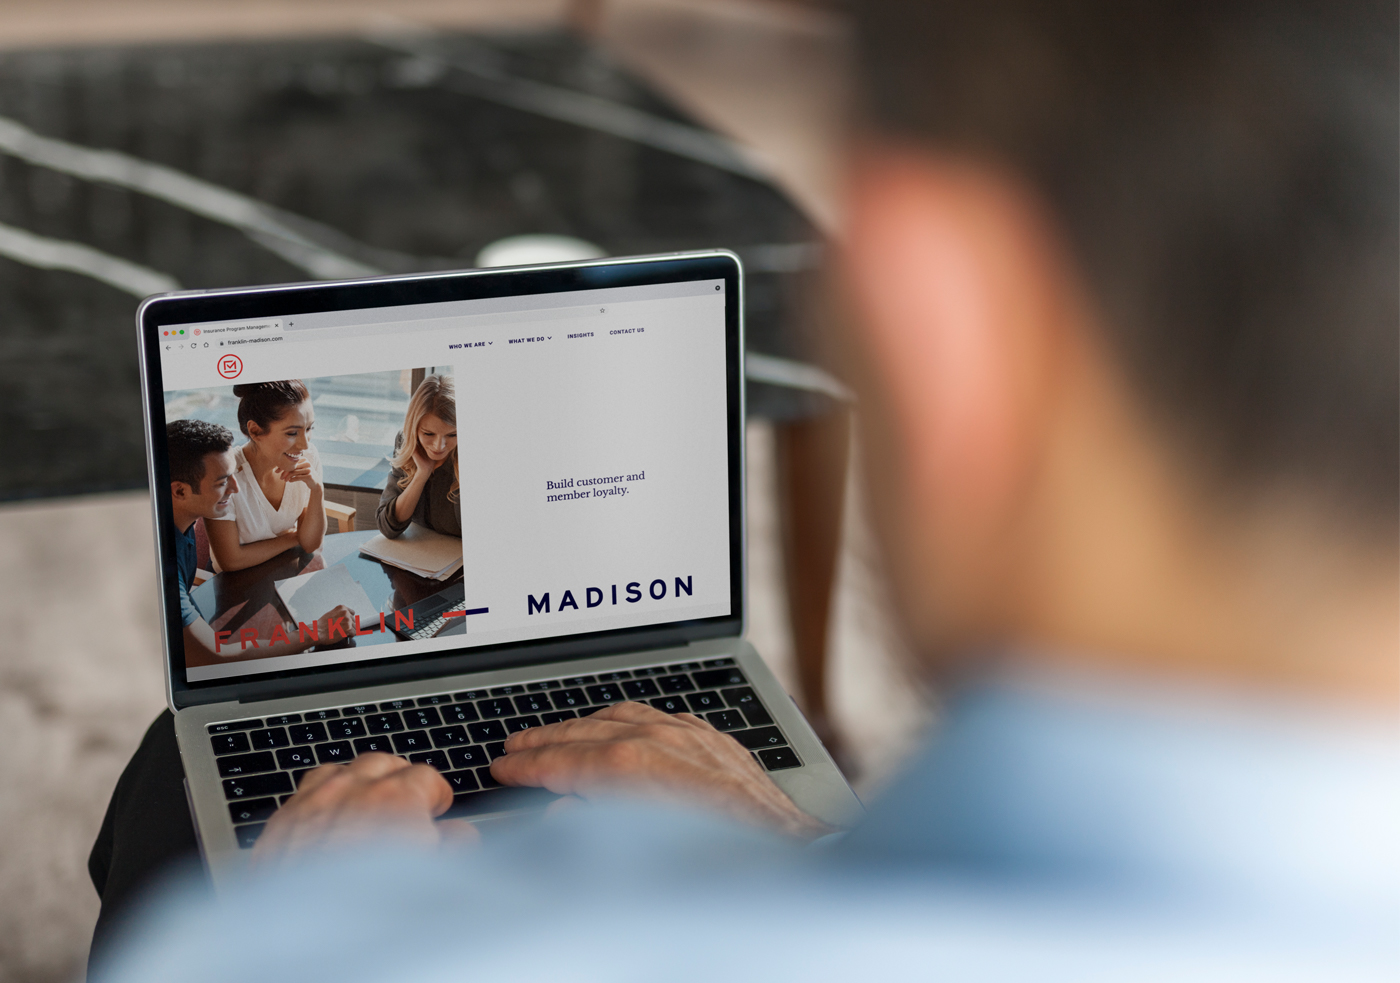 A person looks at the Franklin Madison B2B website design on a laptop